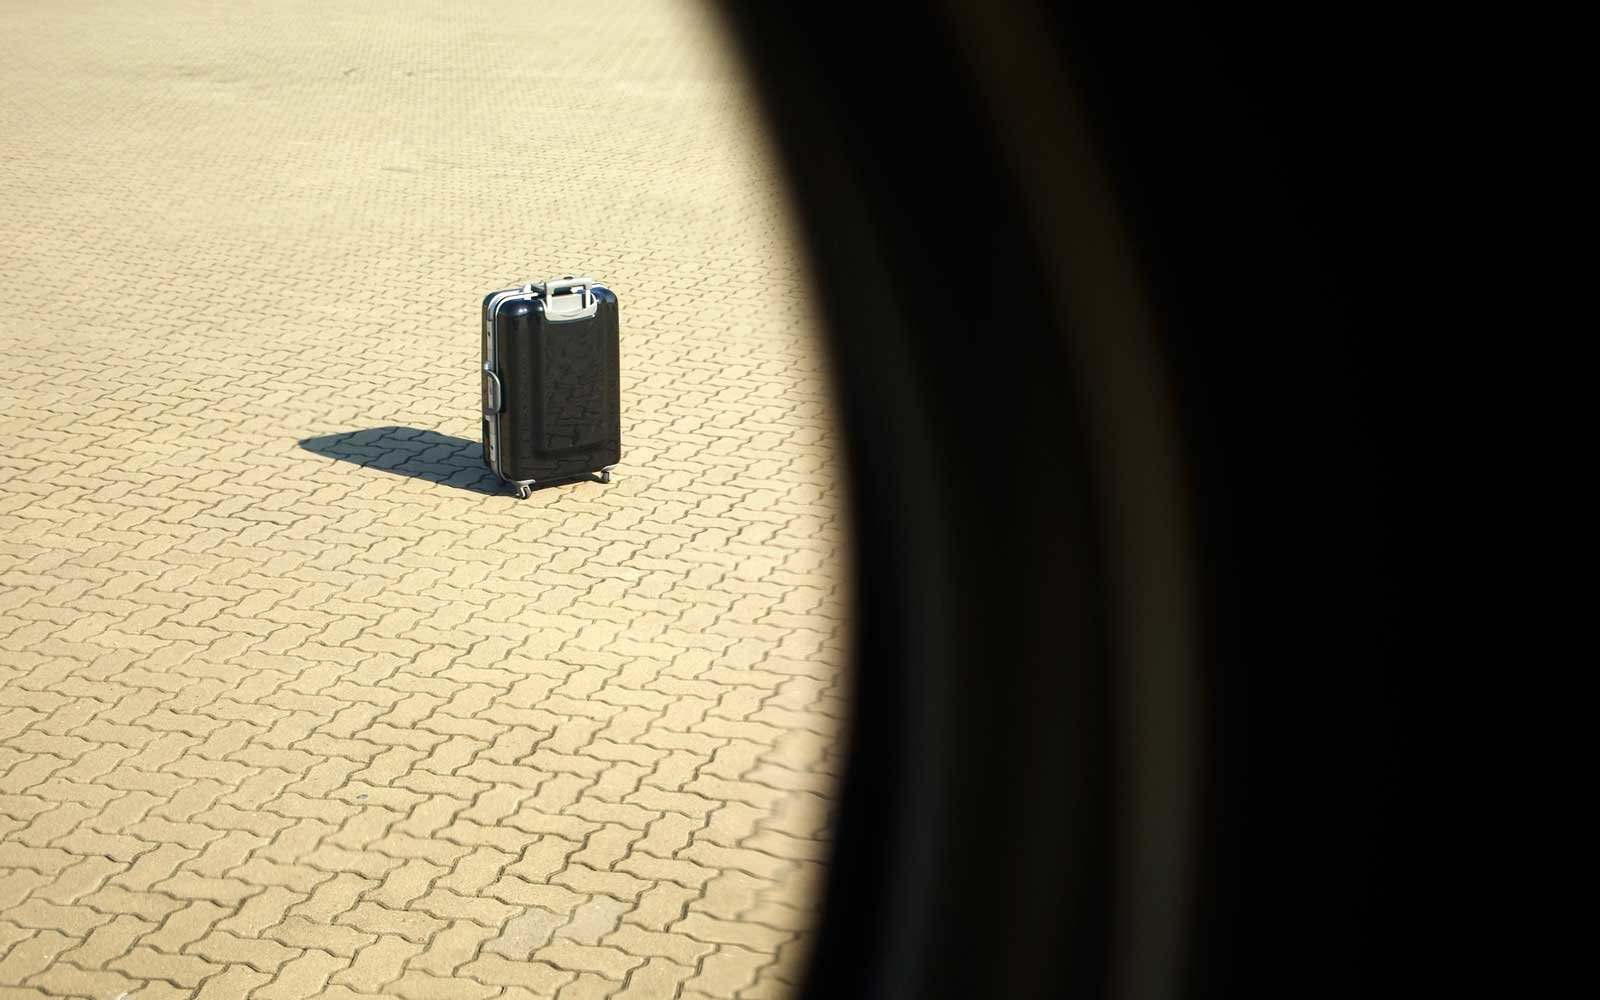 Suitcase Outside of Airplane Window